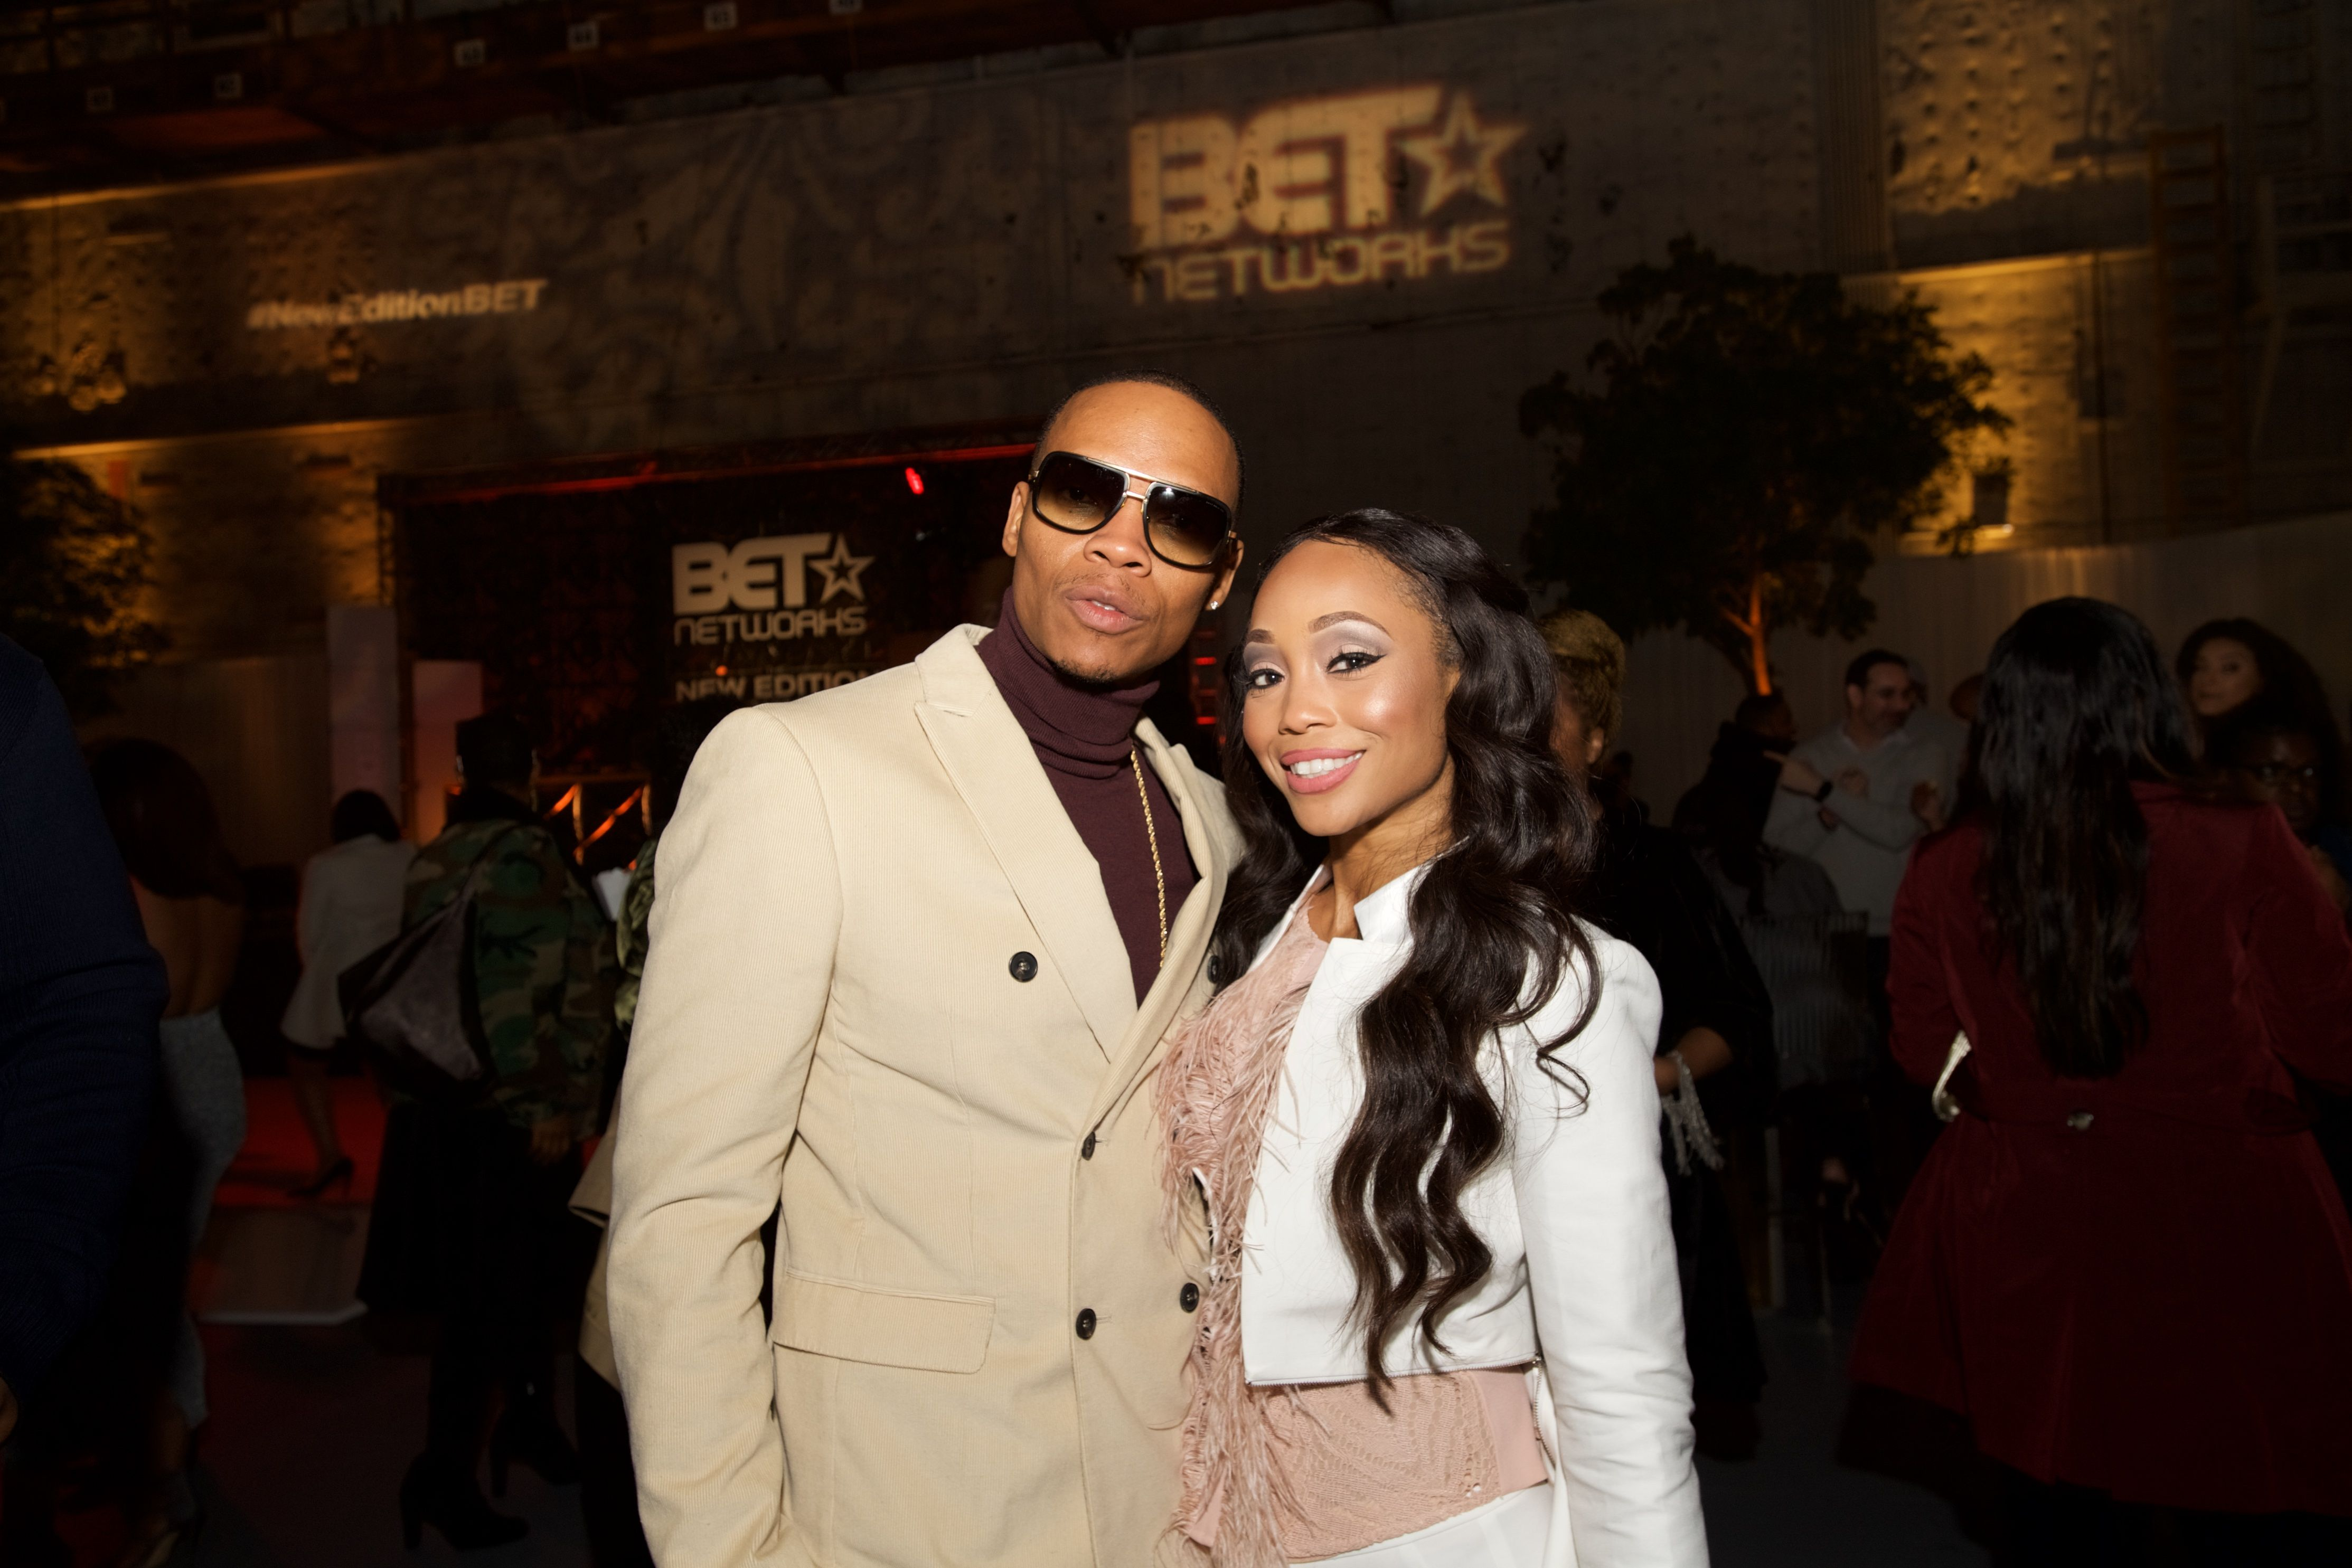 """Shamari DeVoe and husband Ronnie DeVoe at BET's """"The New Edition Story"""" Premiere on January 23, 2017 in L.A. 